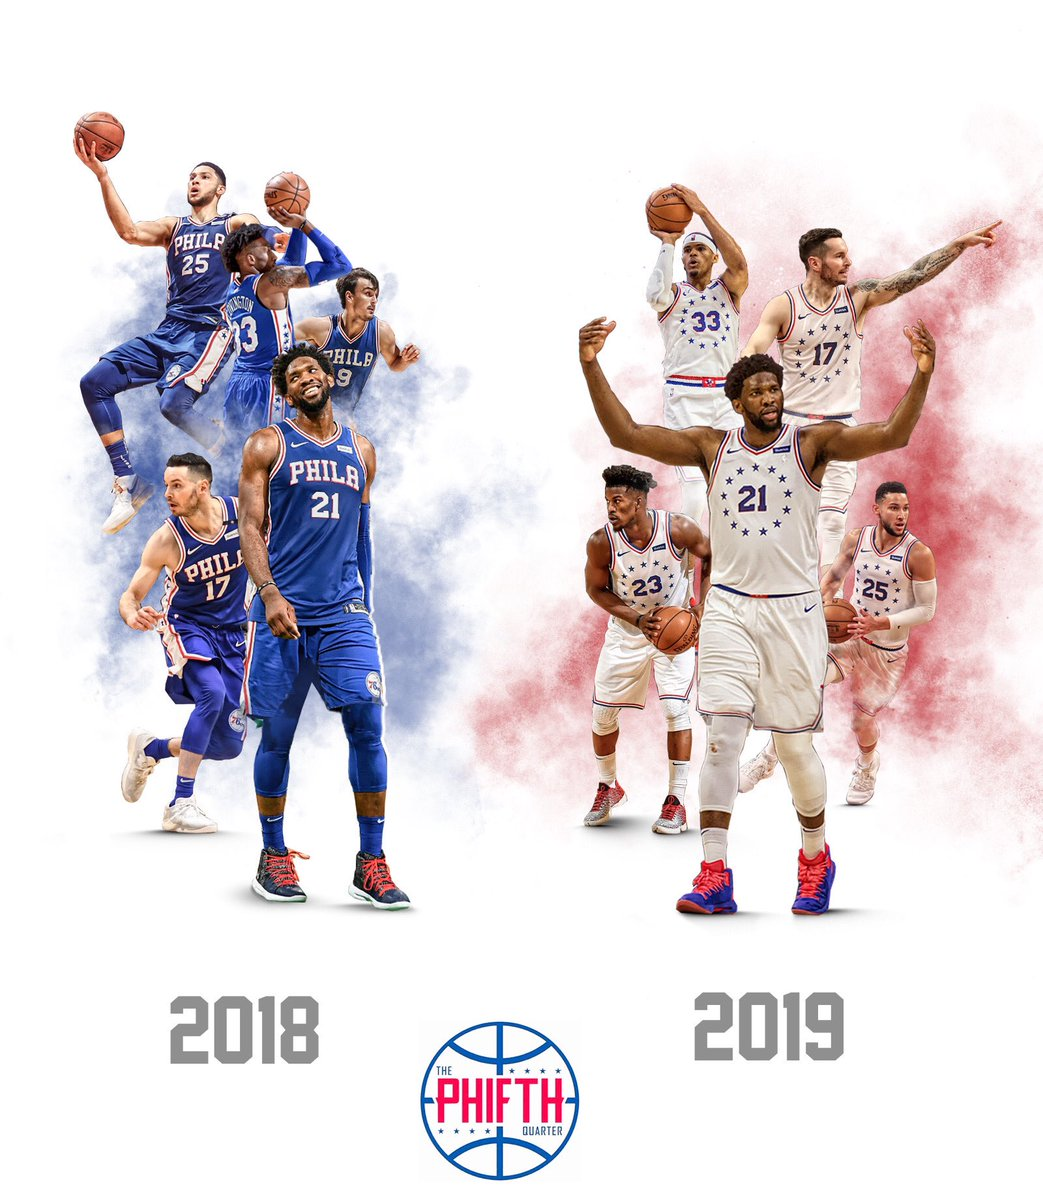 2018 Sixers or 2019 Sixers?? https://t.co/bFnqlZfLmp